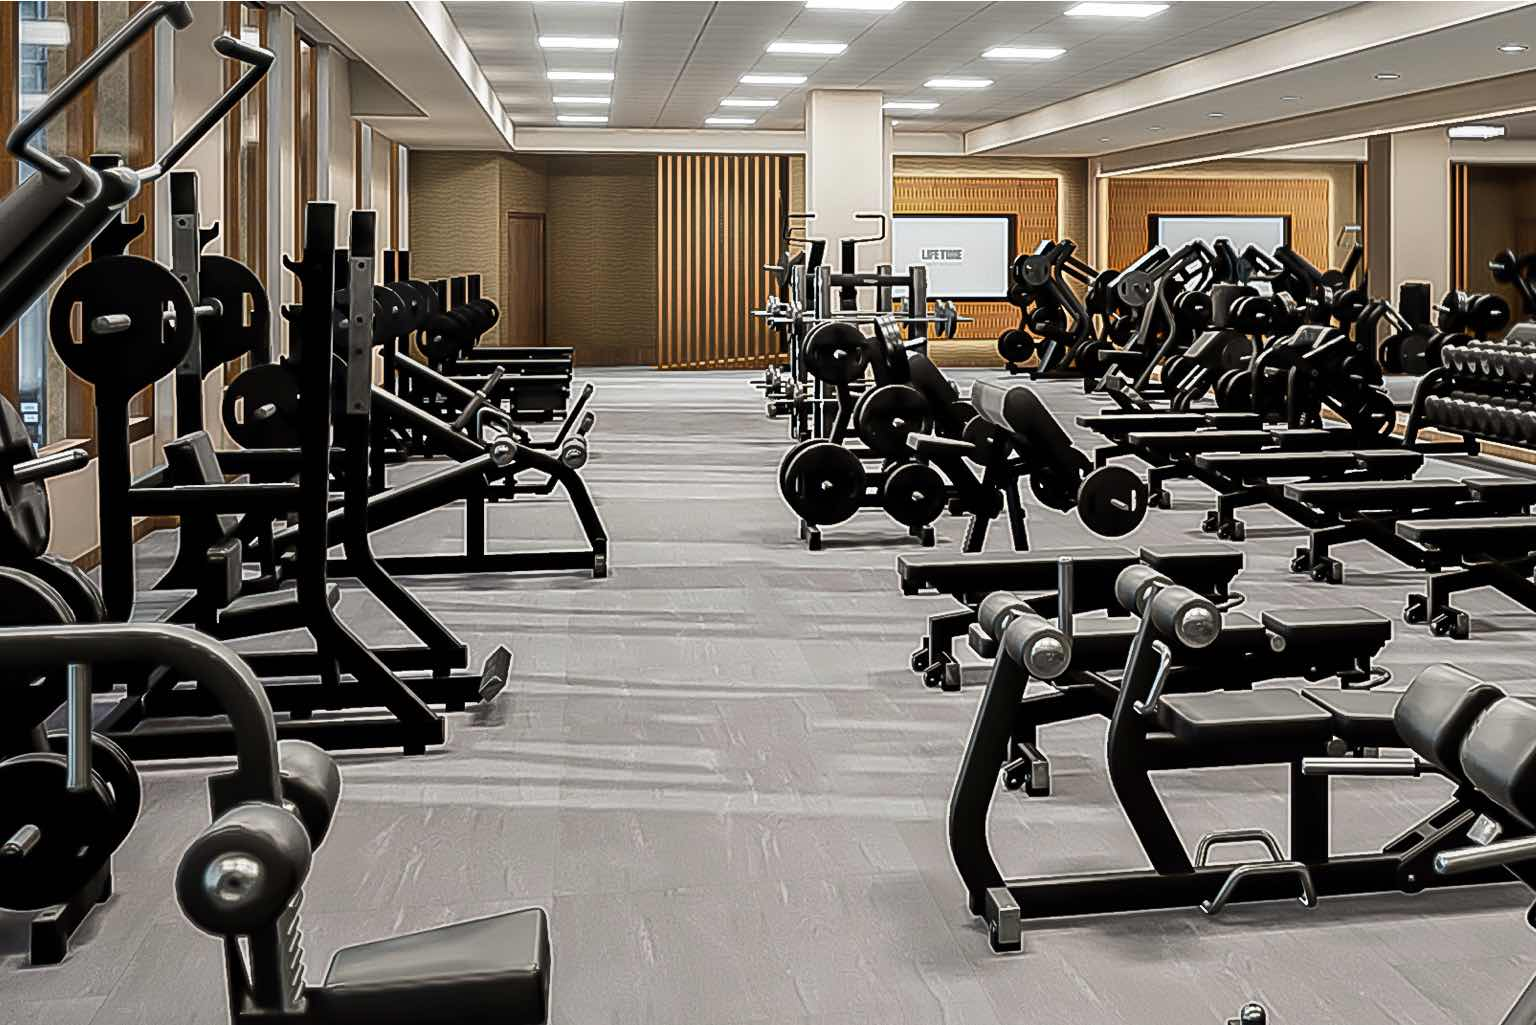 Take your pick of more than 110 brand new Technogym cardio machines.